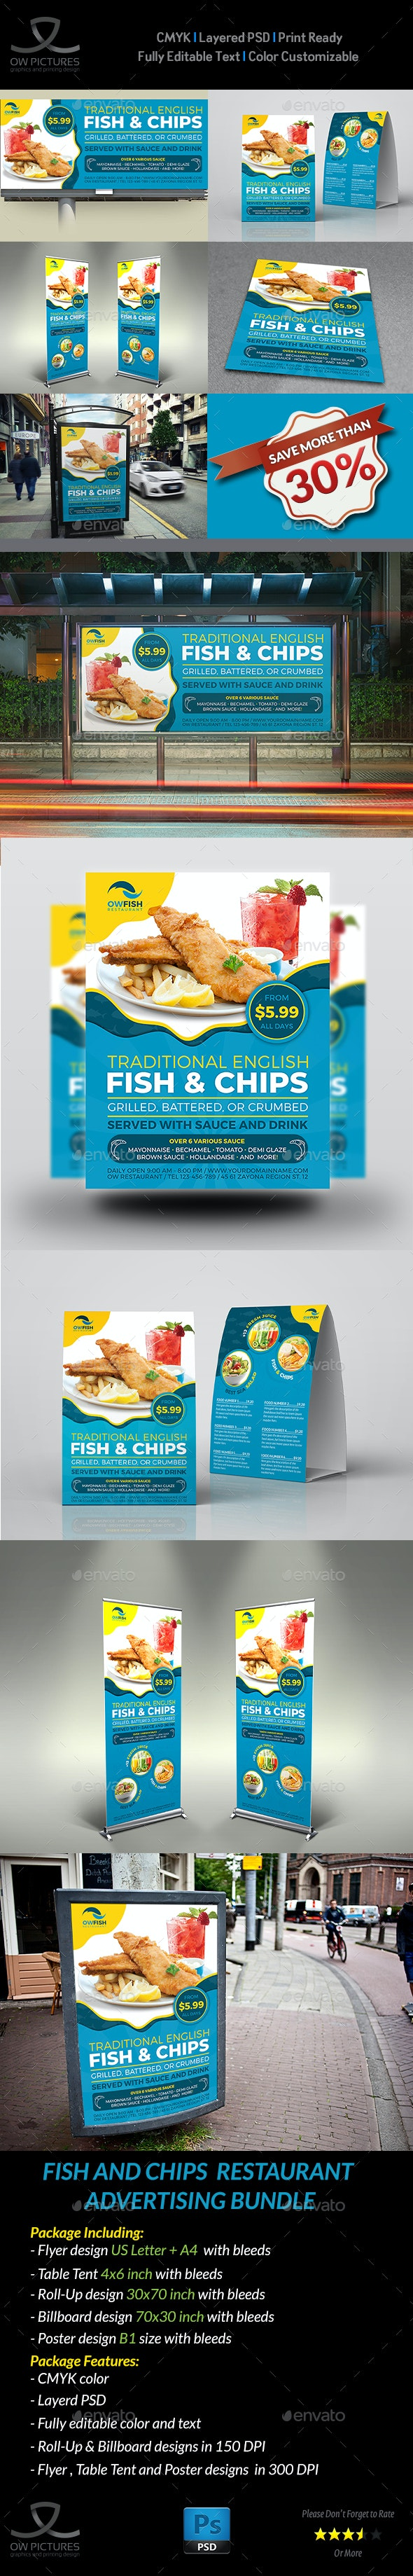 Fish and Chips Restaurant Advertising Bundle - Signage Print Templates